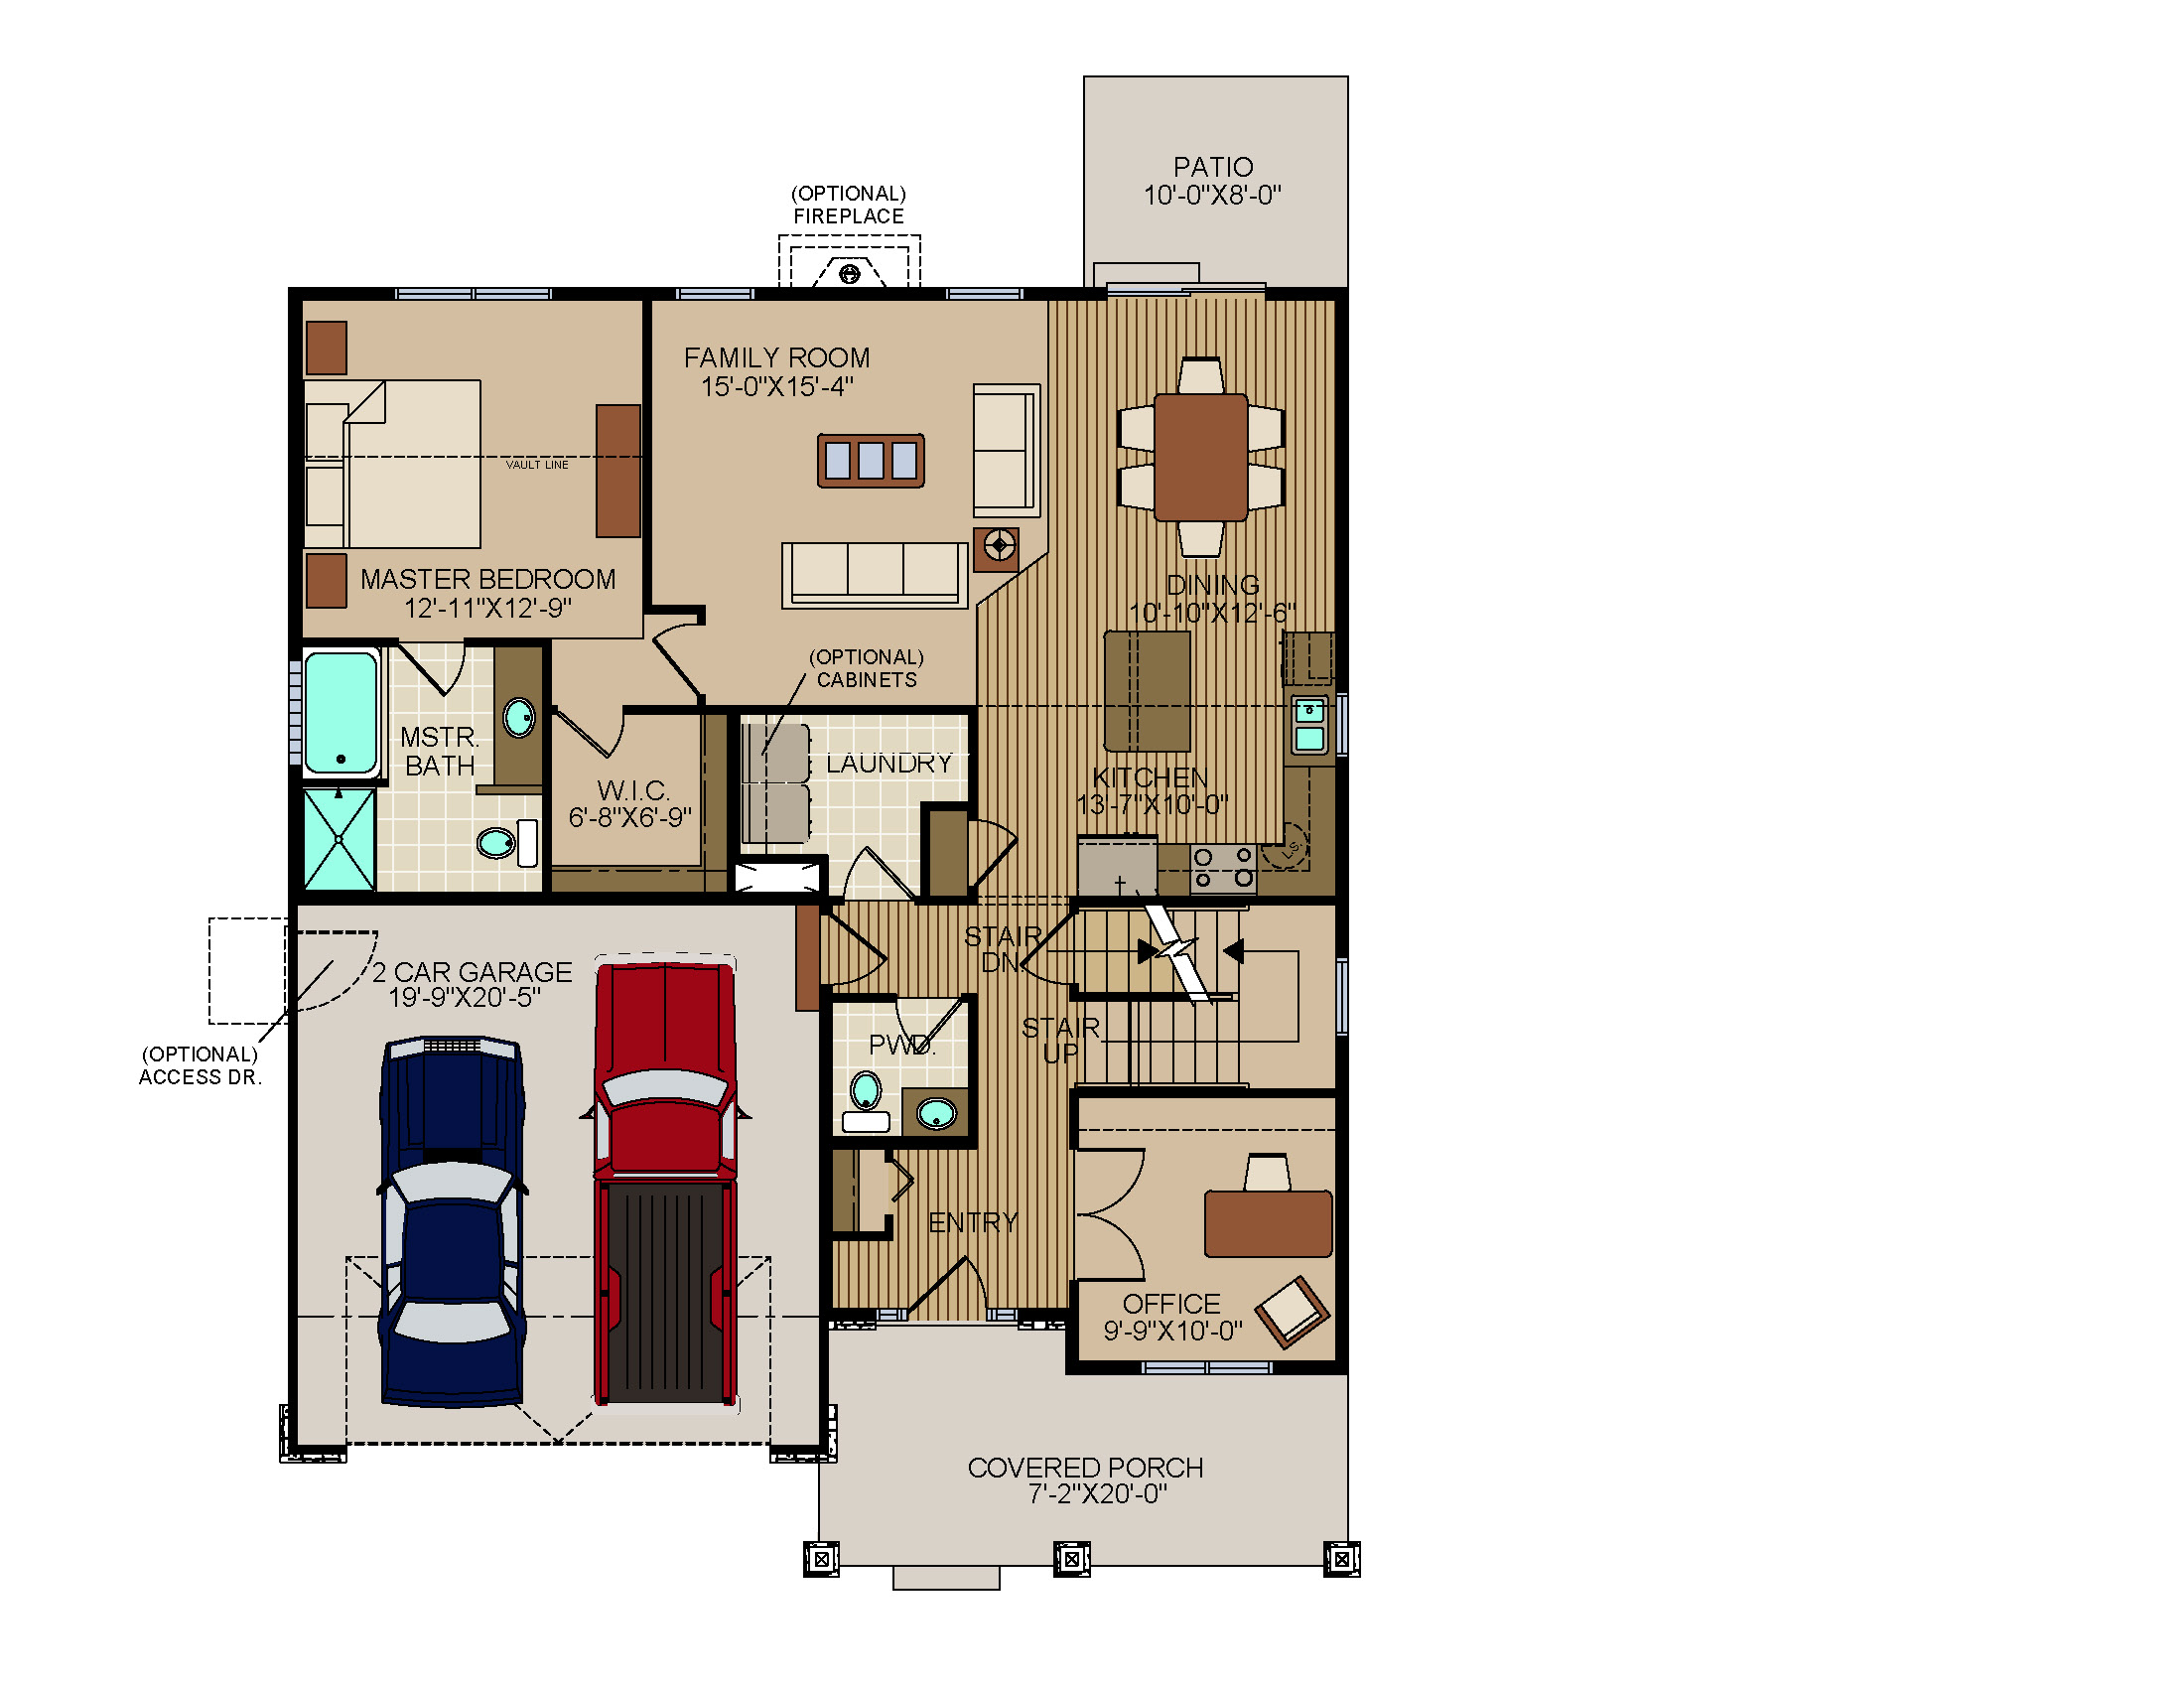 2013kirkland-firstfloorplan.jpg